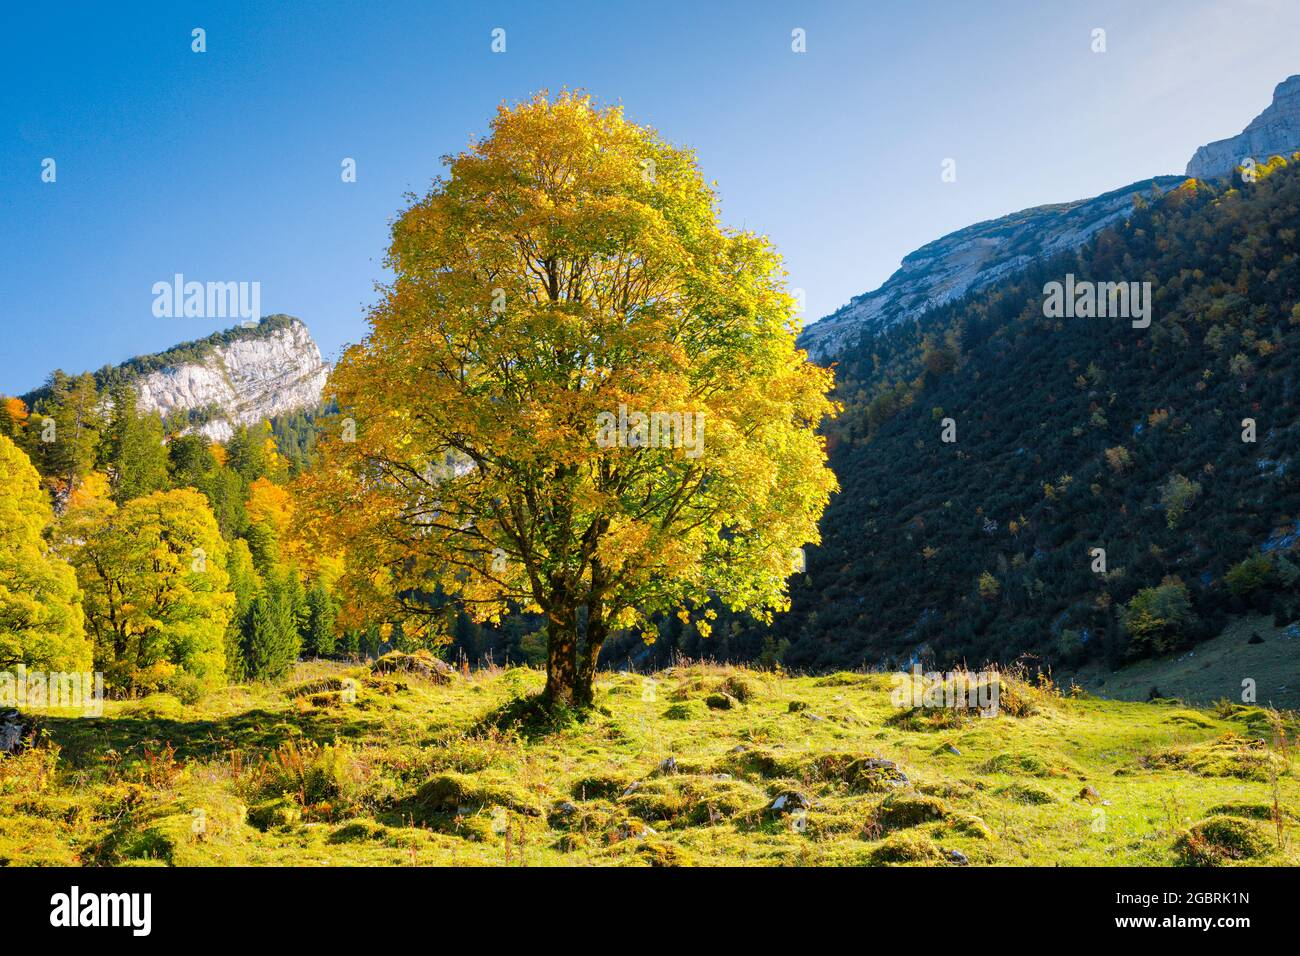 geography / travel, Switzerland, Celtic maple, Acer pseudoplatanus, NO-EXCLUSIVE-USE FOR FOLDING-CARD-GREETING-CARD-POSTCARD-USE Stock Photo